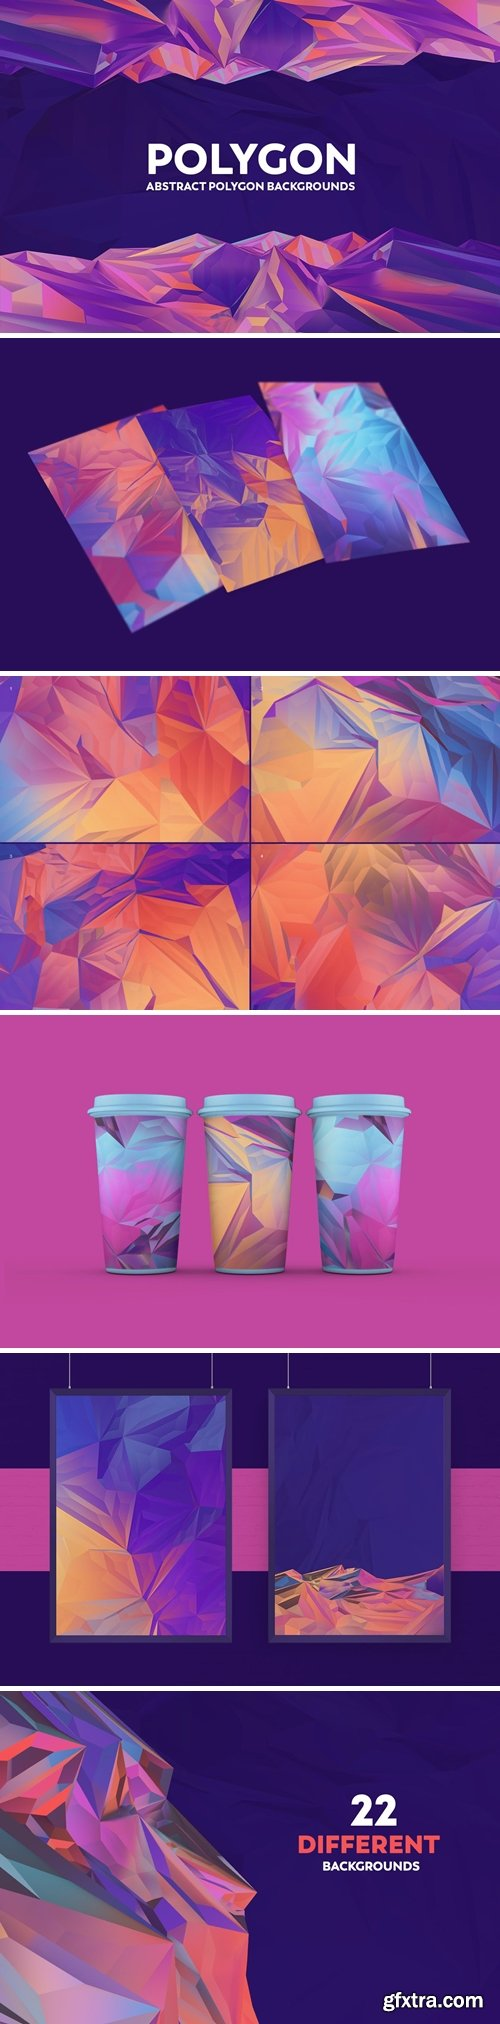 Abstract Polygon Backgrounds - Colorful Colors